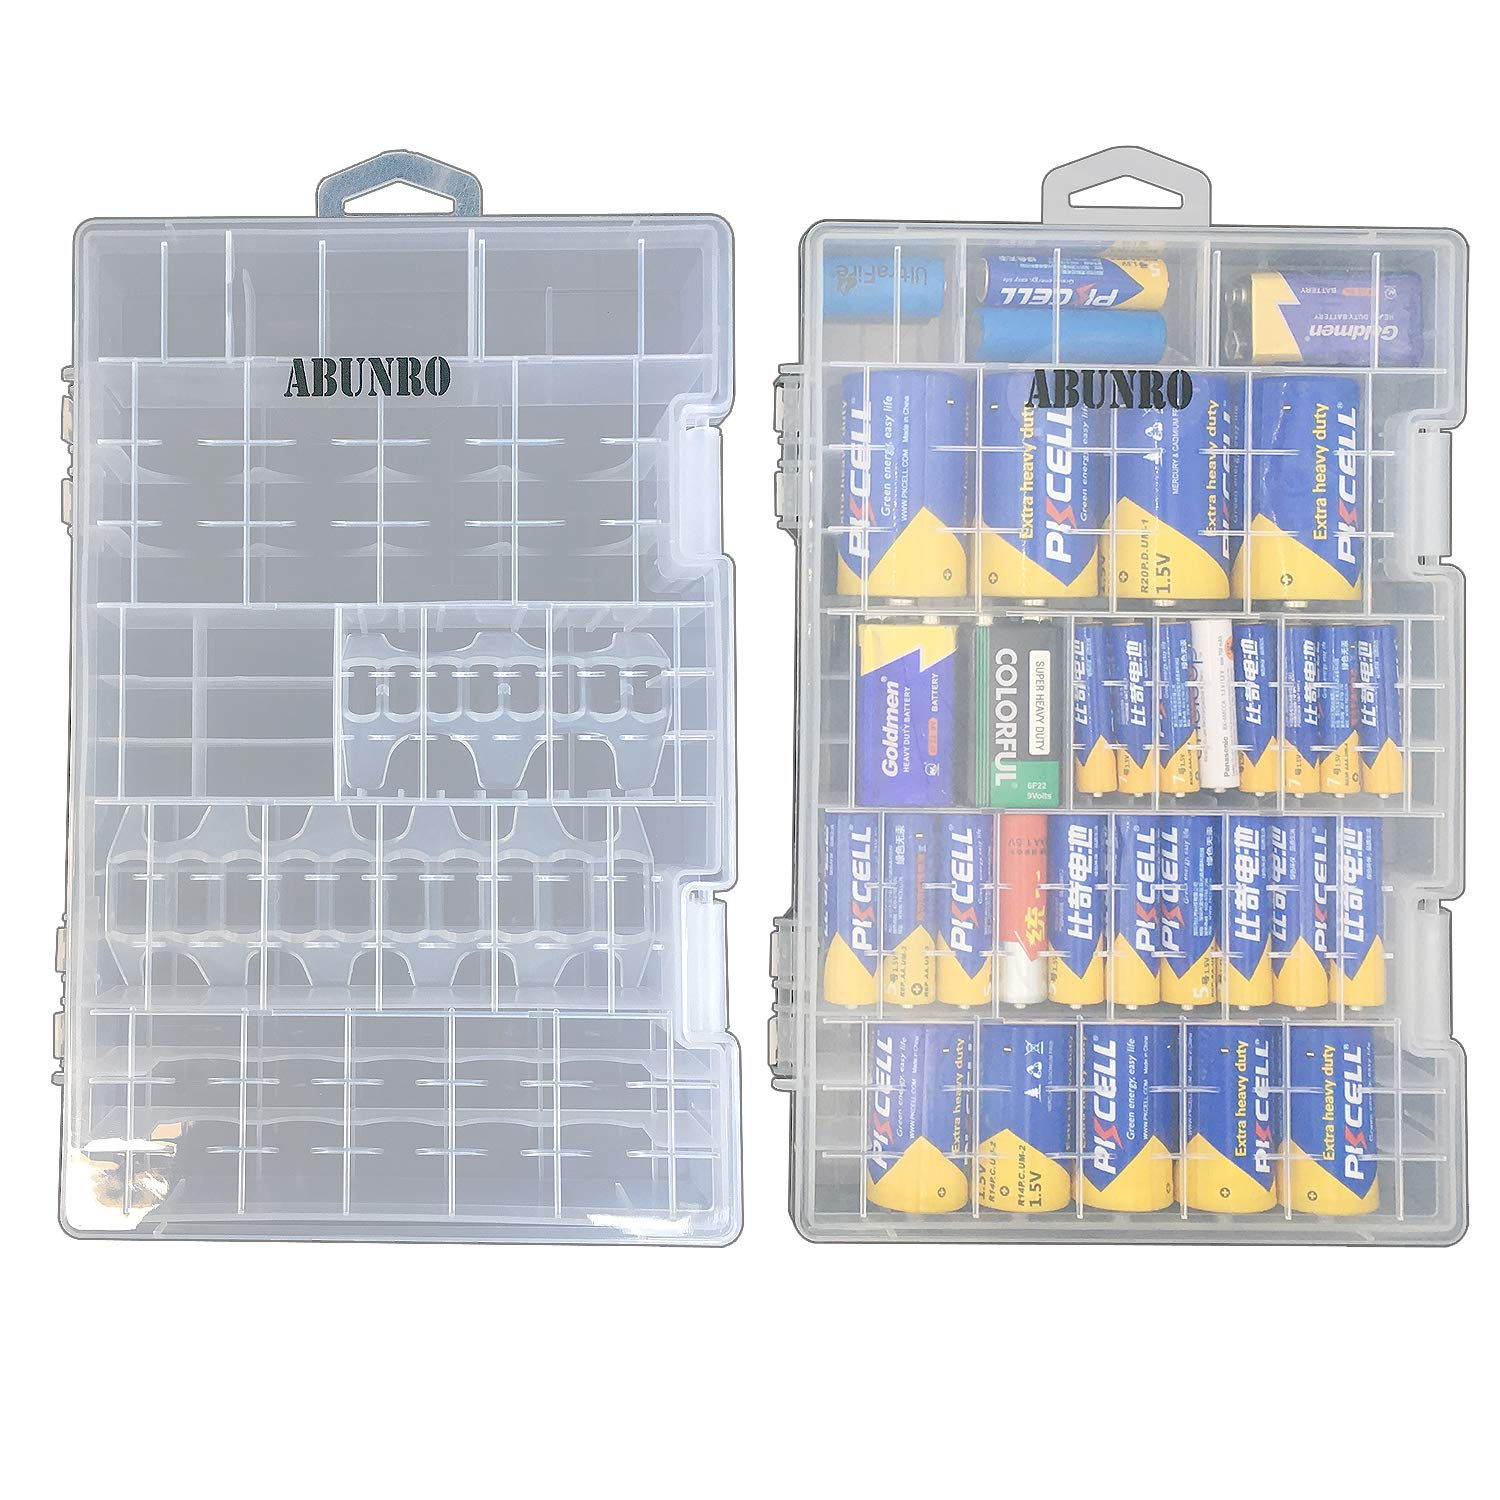 2pcs Battery Organizer Storage case for 136pcs Battery Holds, AA, AAA, C, D, 9 Volt Sizes and Button Battery Storage Box, Great Storage fordrawer Tools Room